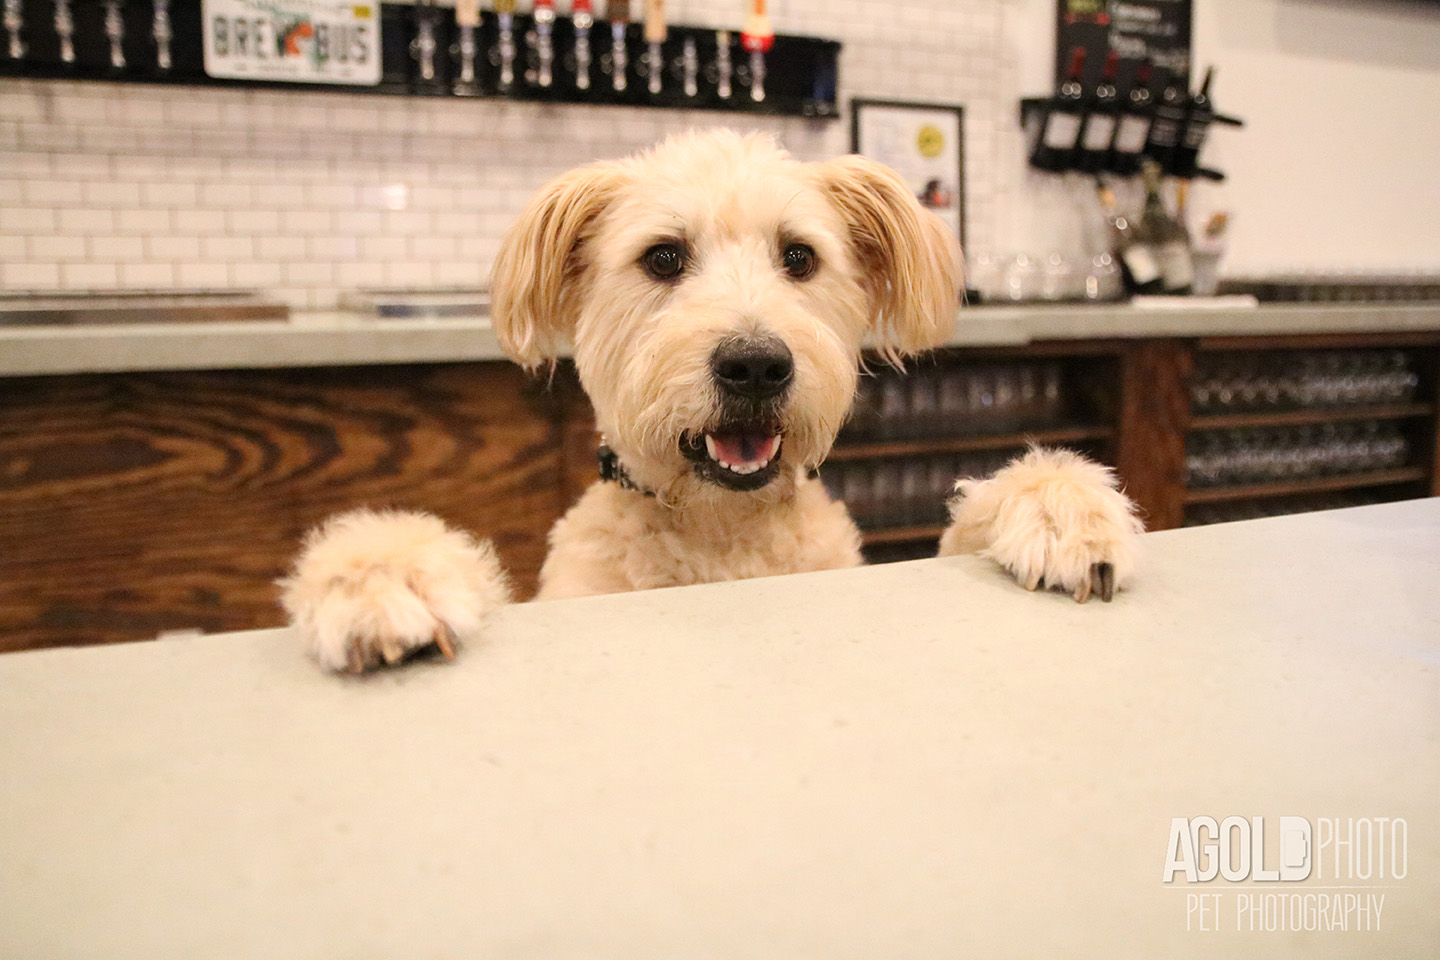 Seminole Heights Pup Crawl_AGoldPhoto Pet Photography_2